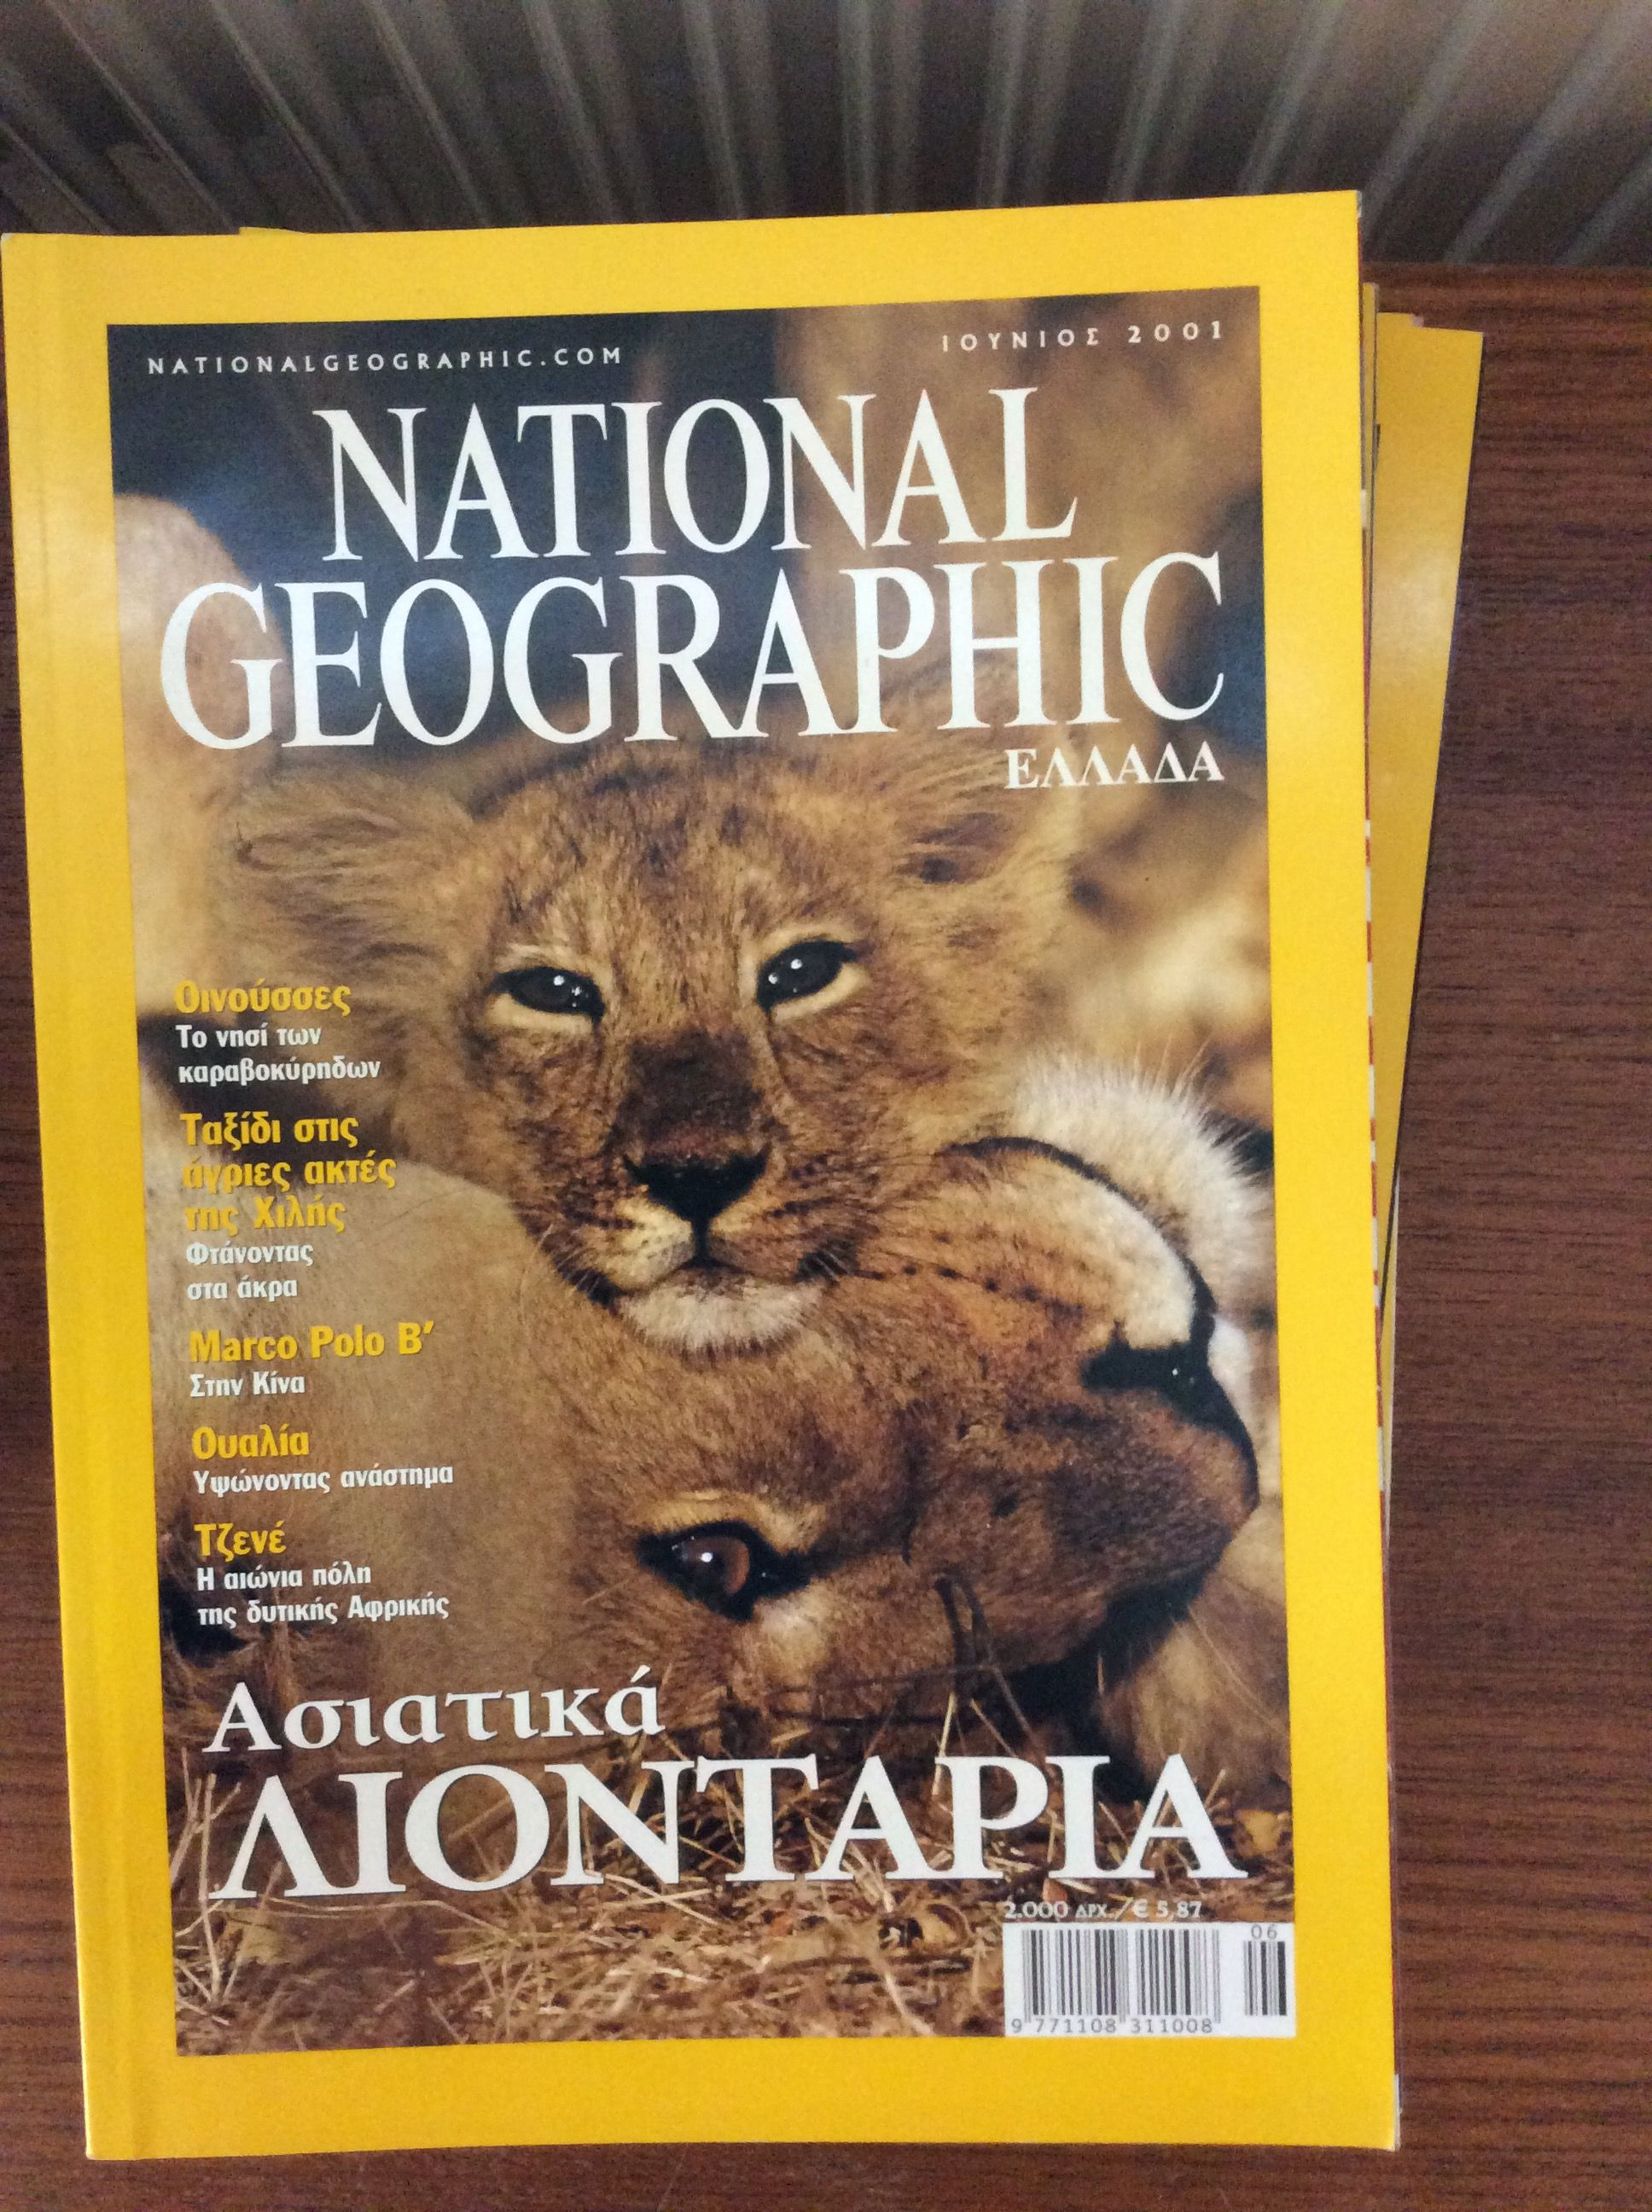 Pin By Kyra Lazarou On My National Geographic National Geographic National Geographic Magazine National